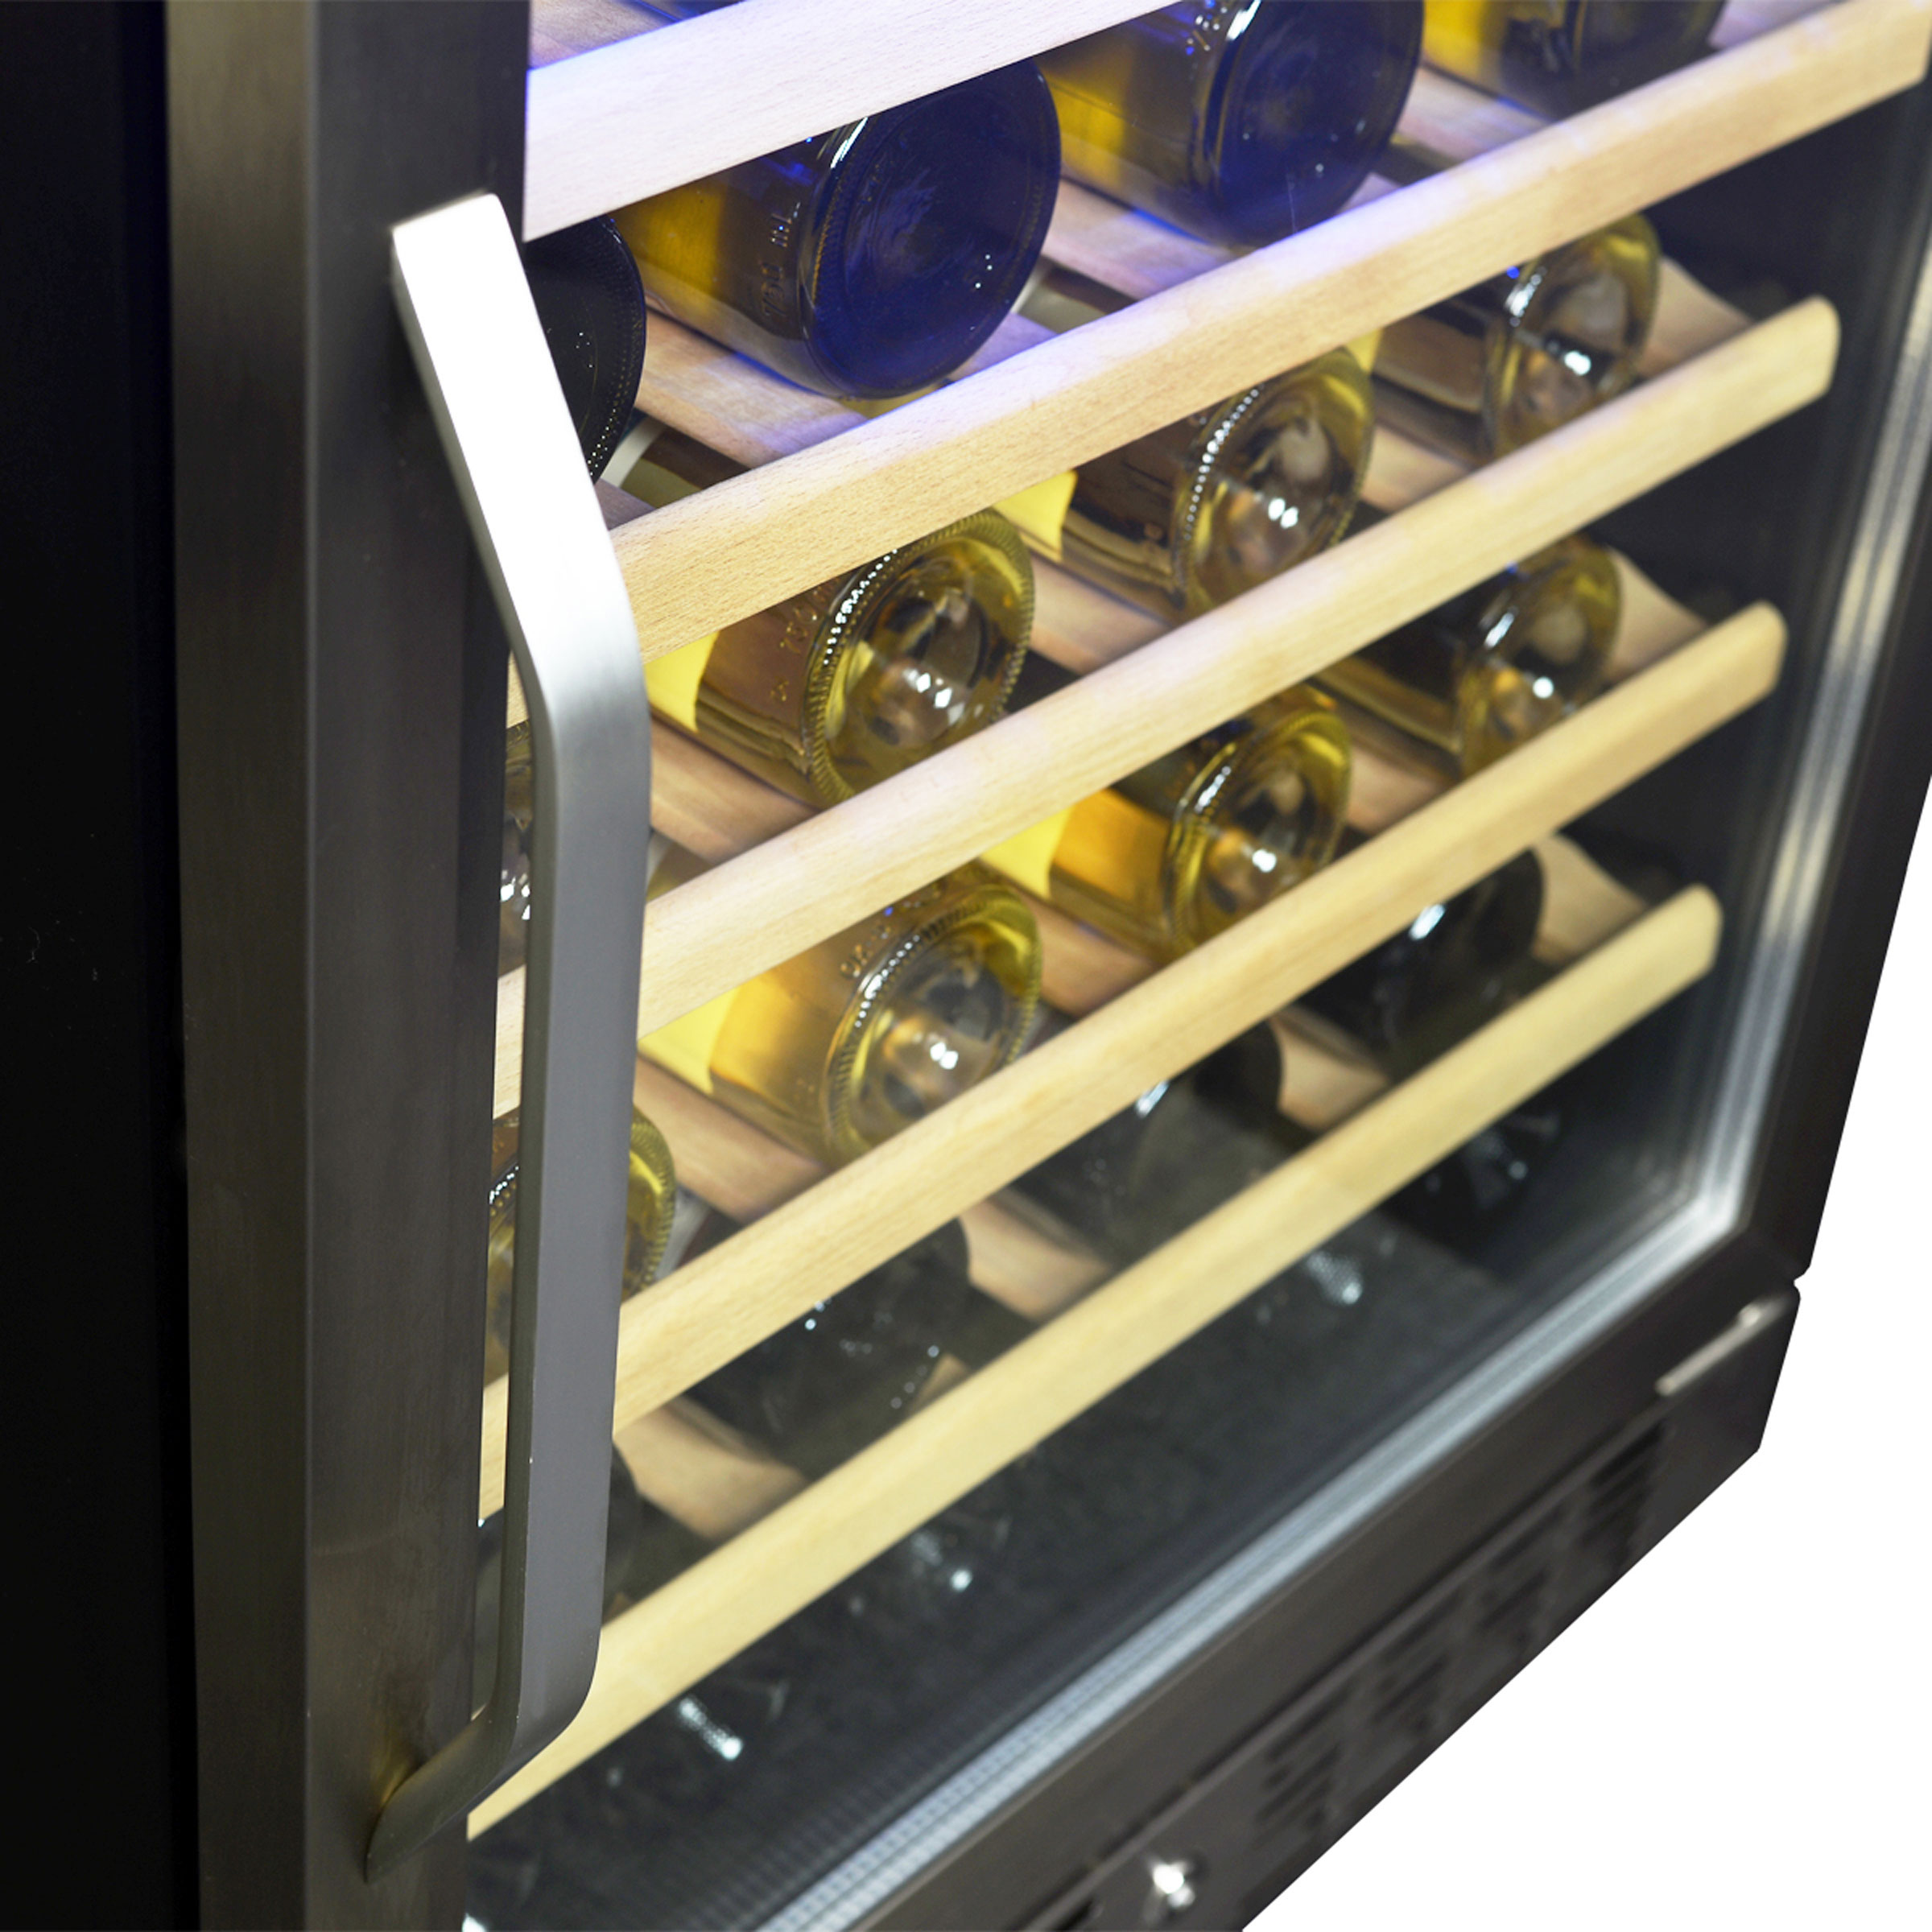 NewAir AWR-520SB 52 Bottle Wine Cooler